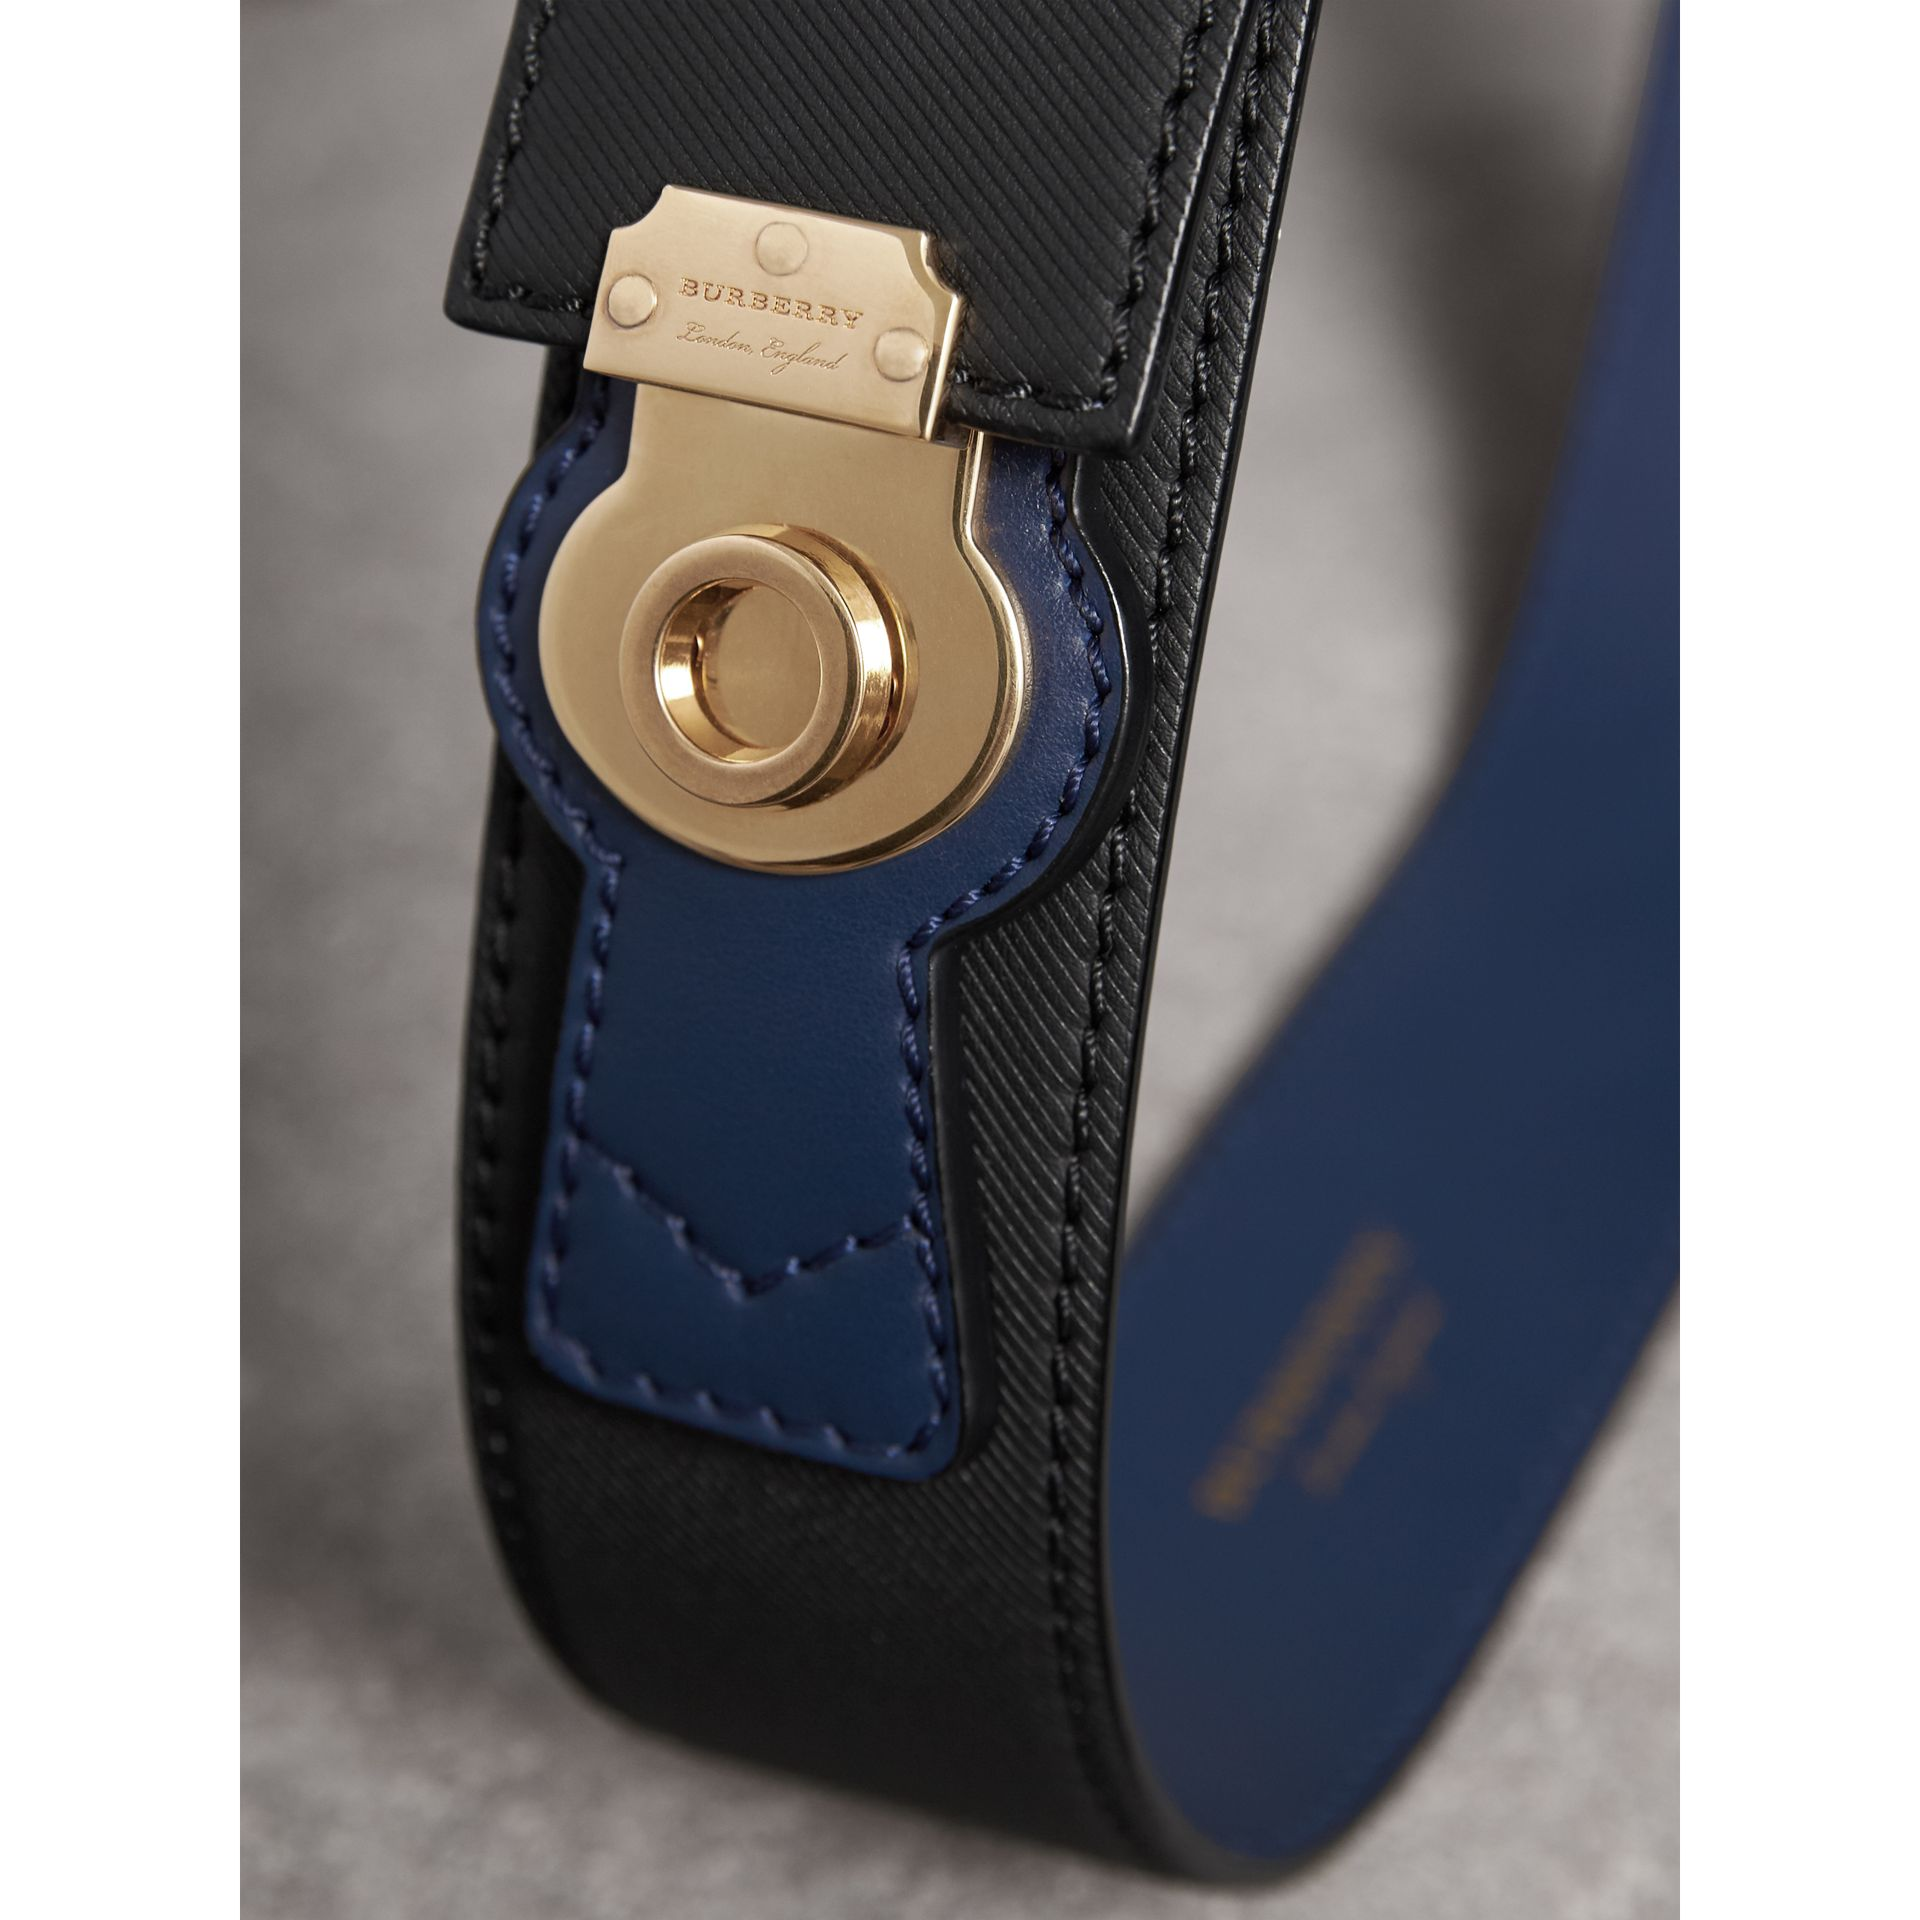 Two-tone Trench Leather Belt in Black / Ink Blue - Women | Burberry - gallery image 1